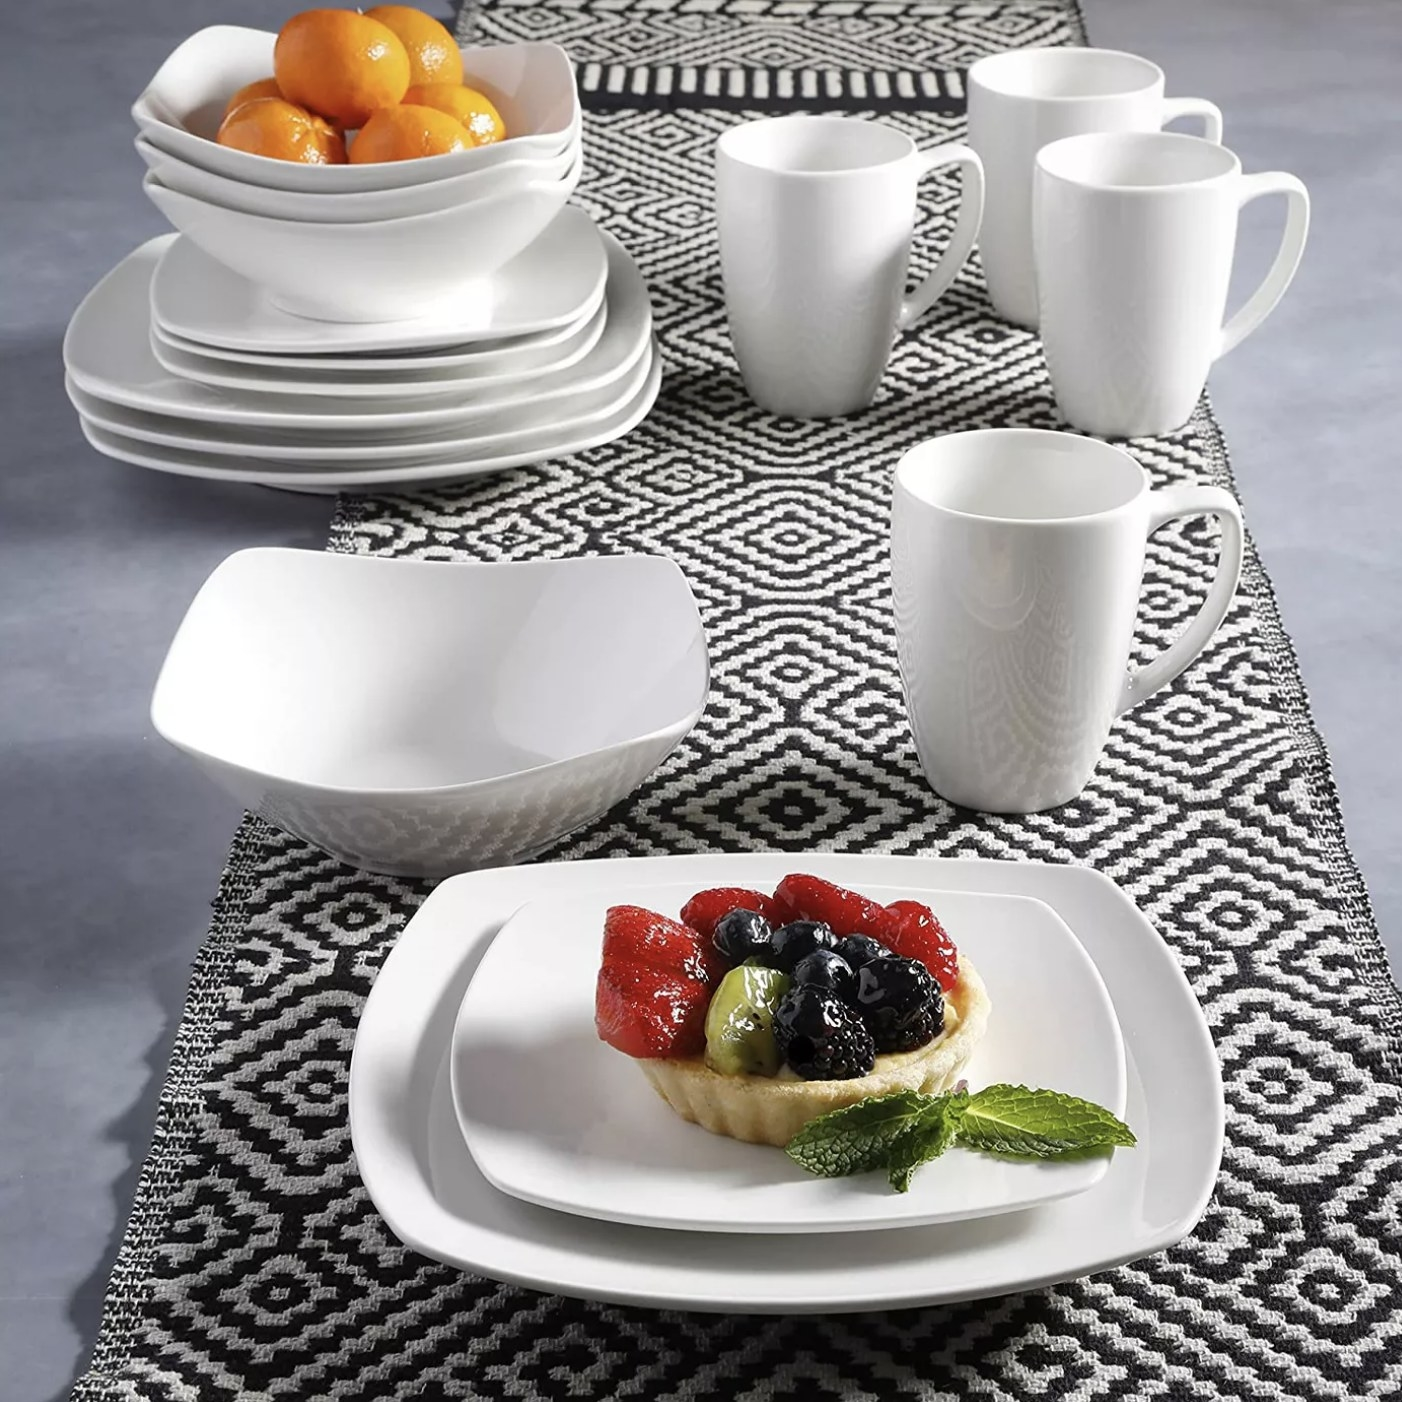 The white porcelain square plates on a table